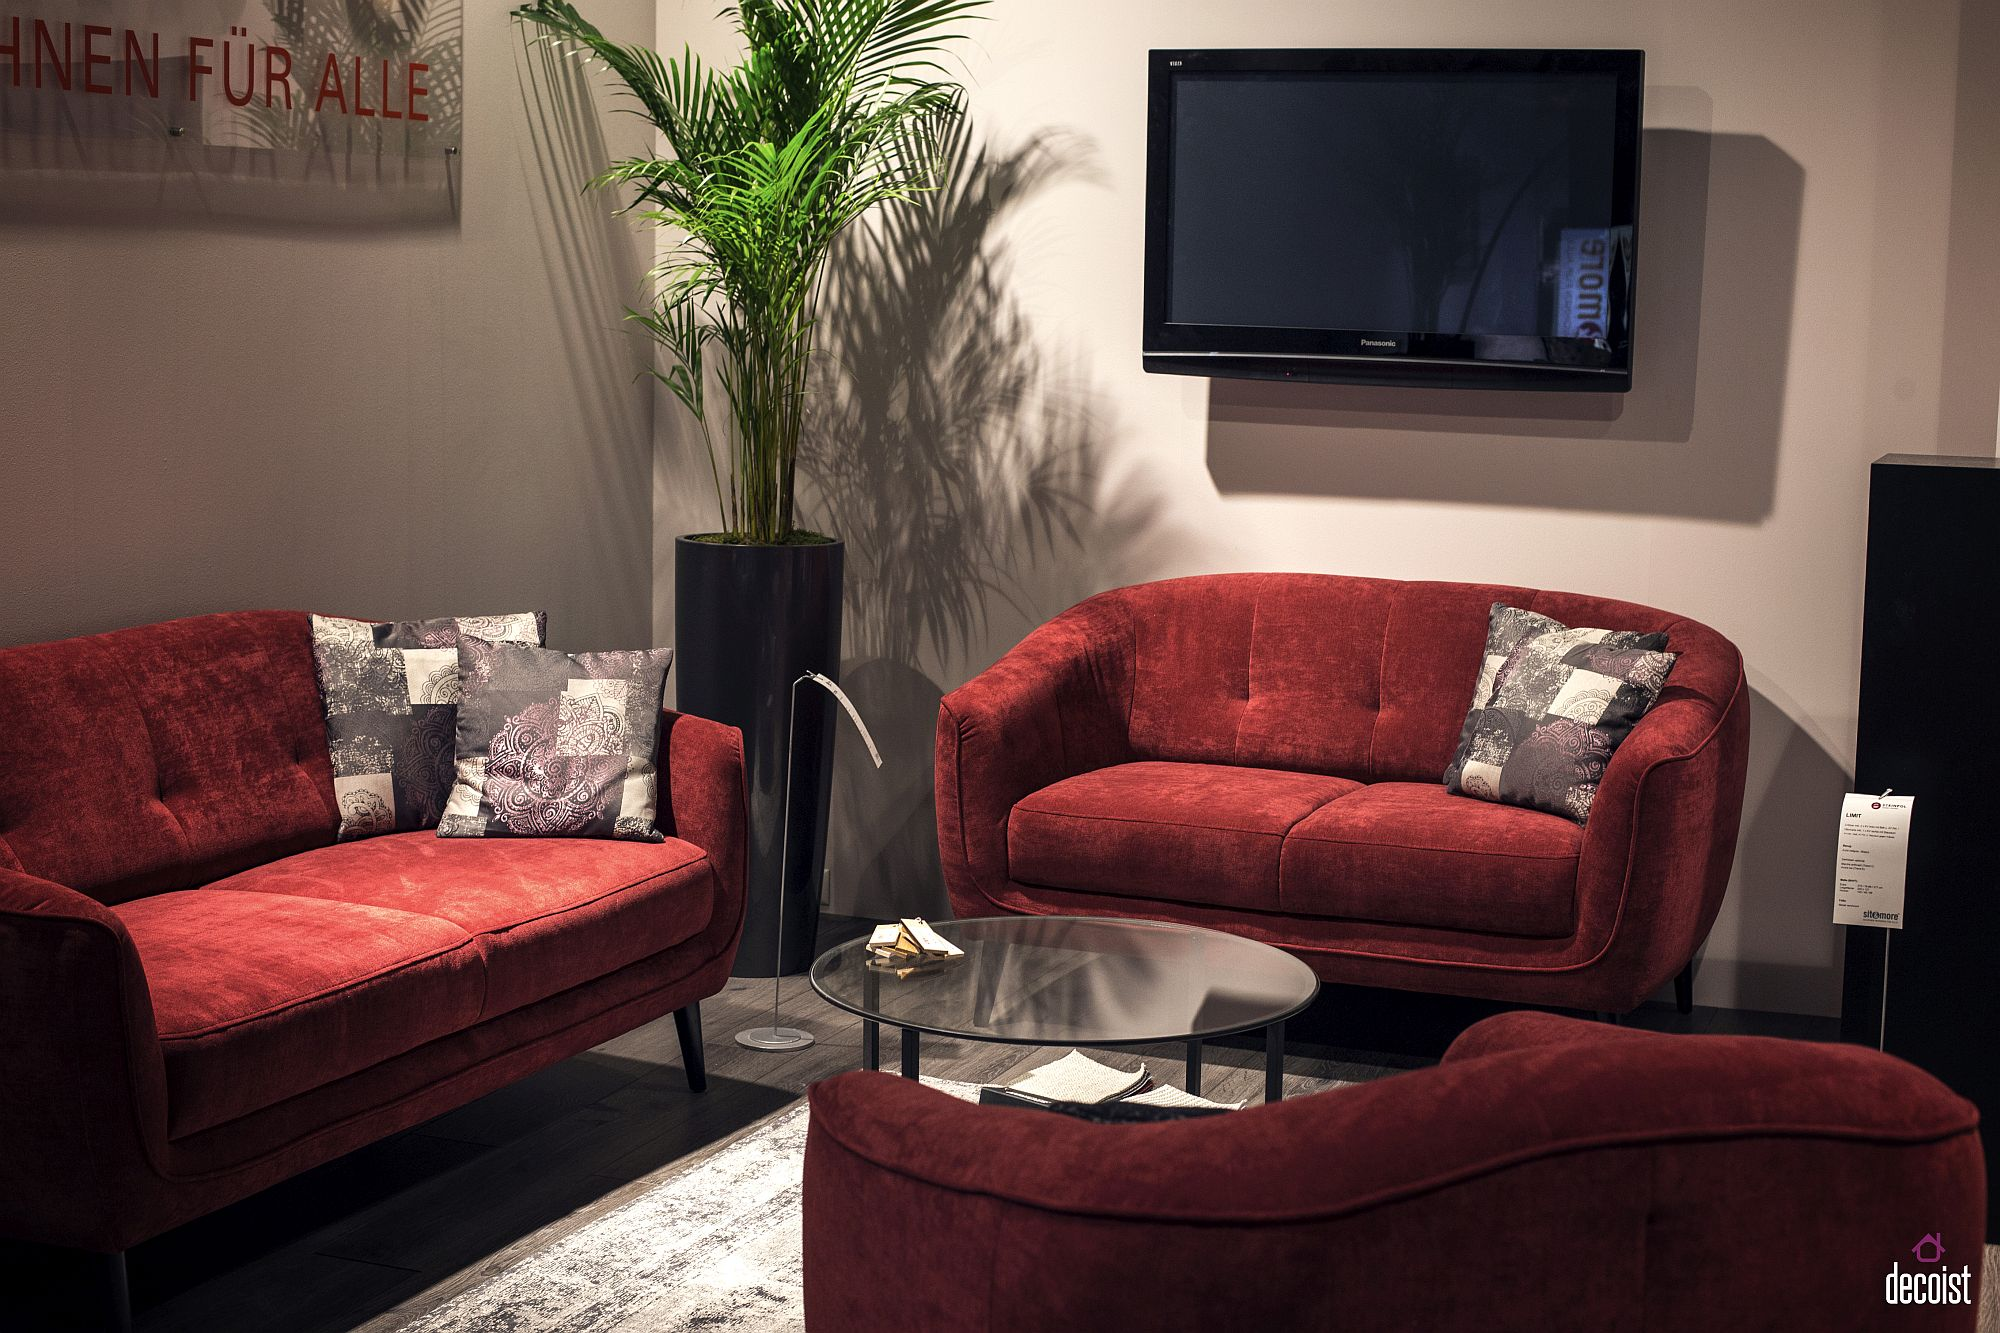 Neutral living space with sofas in red